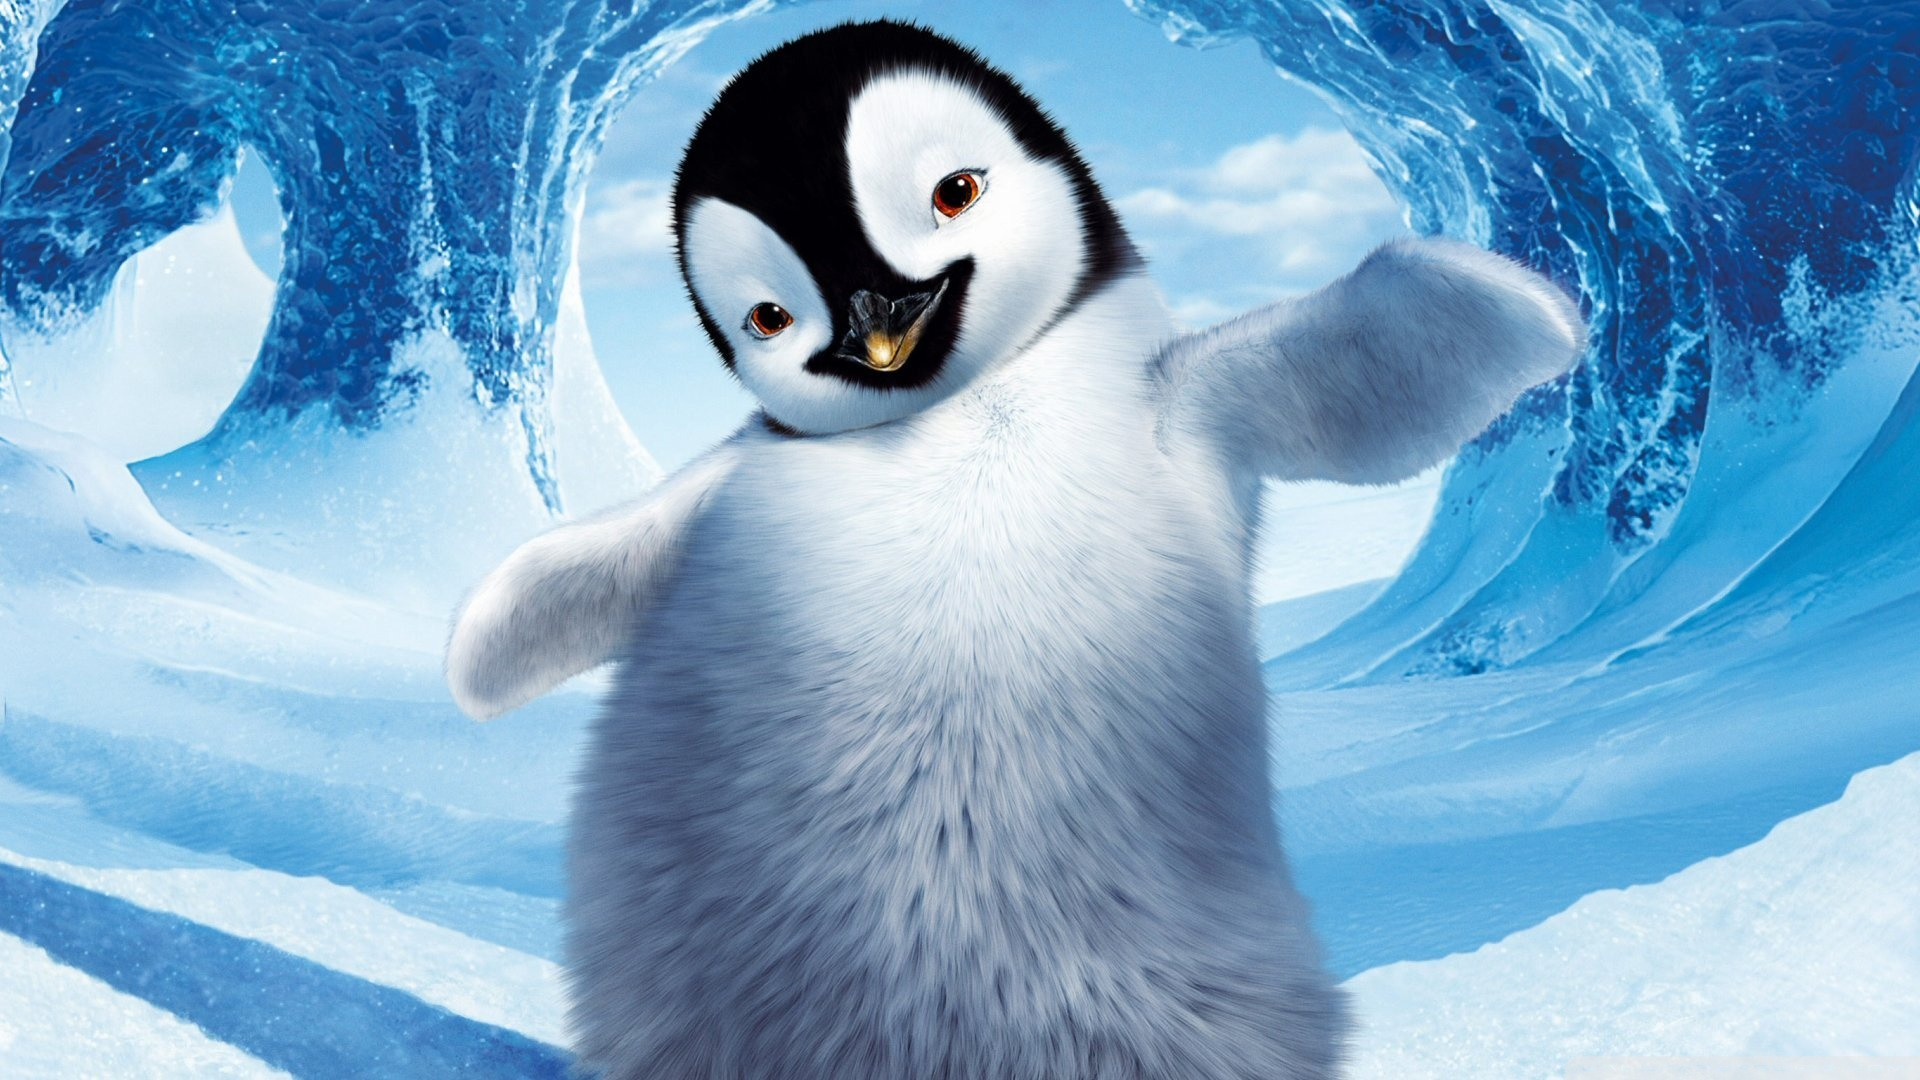 Happy Feet 2 Movie Wallpapers HD Wallpapers 1920x1080